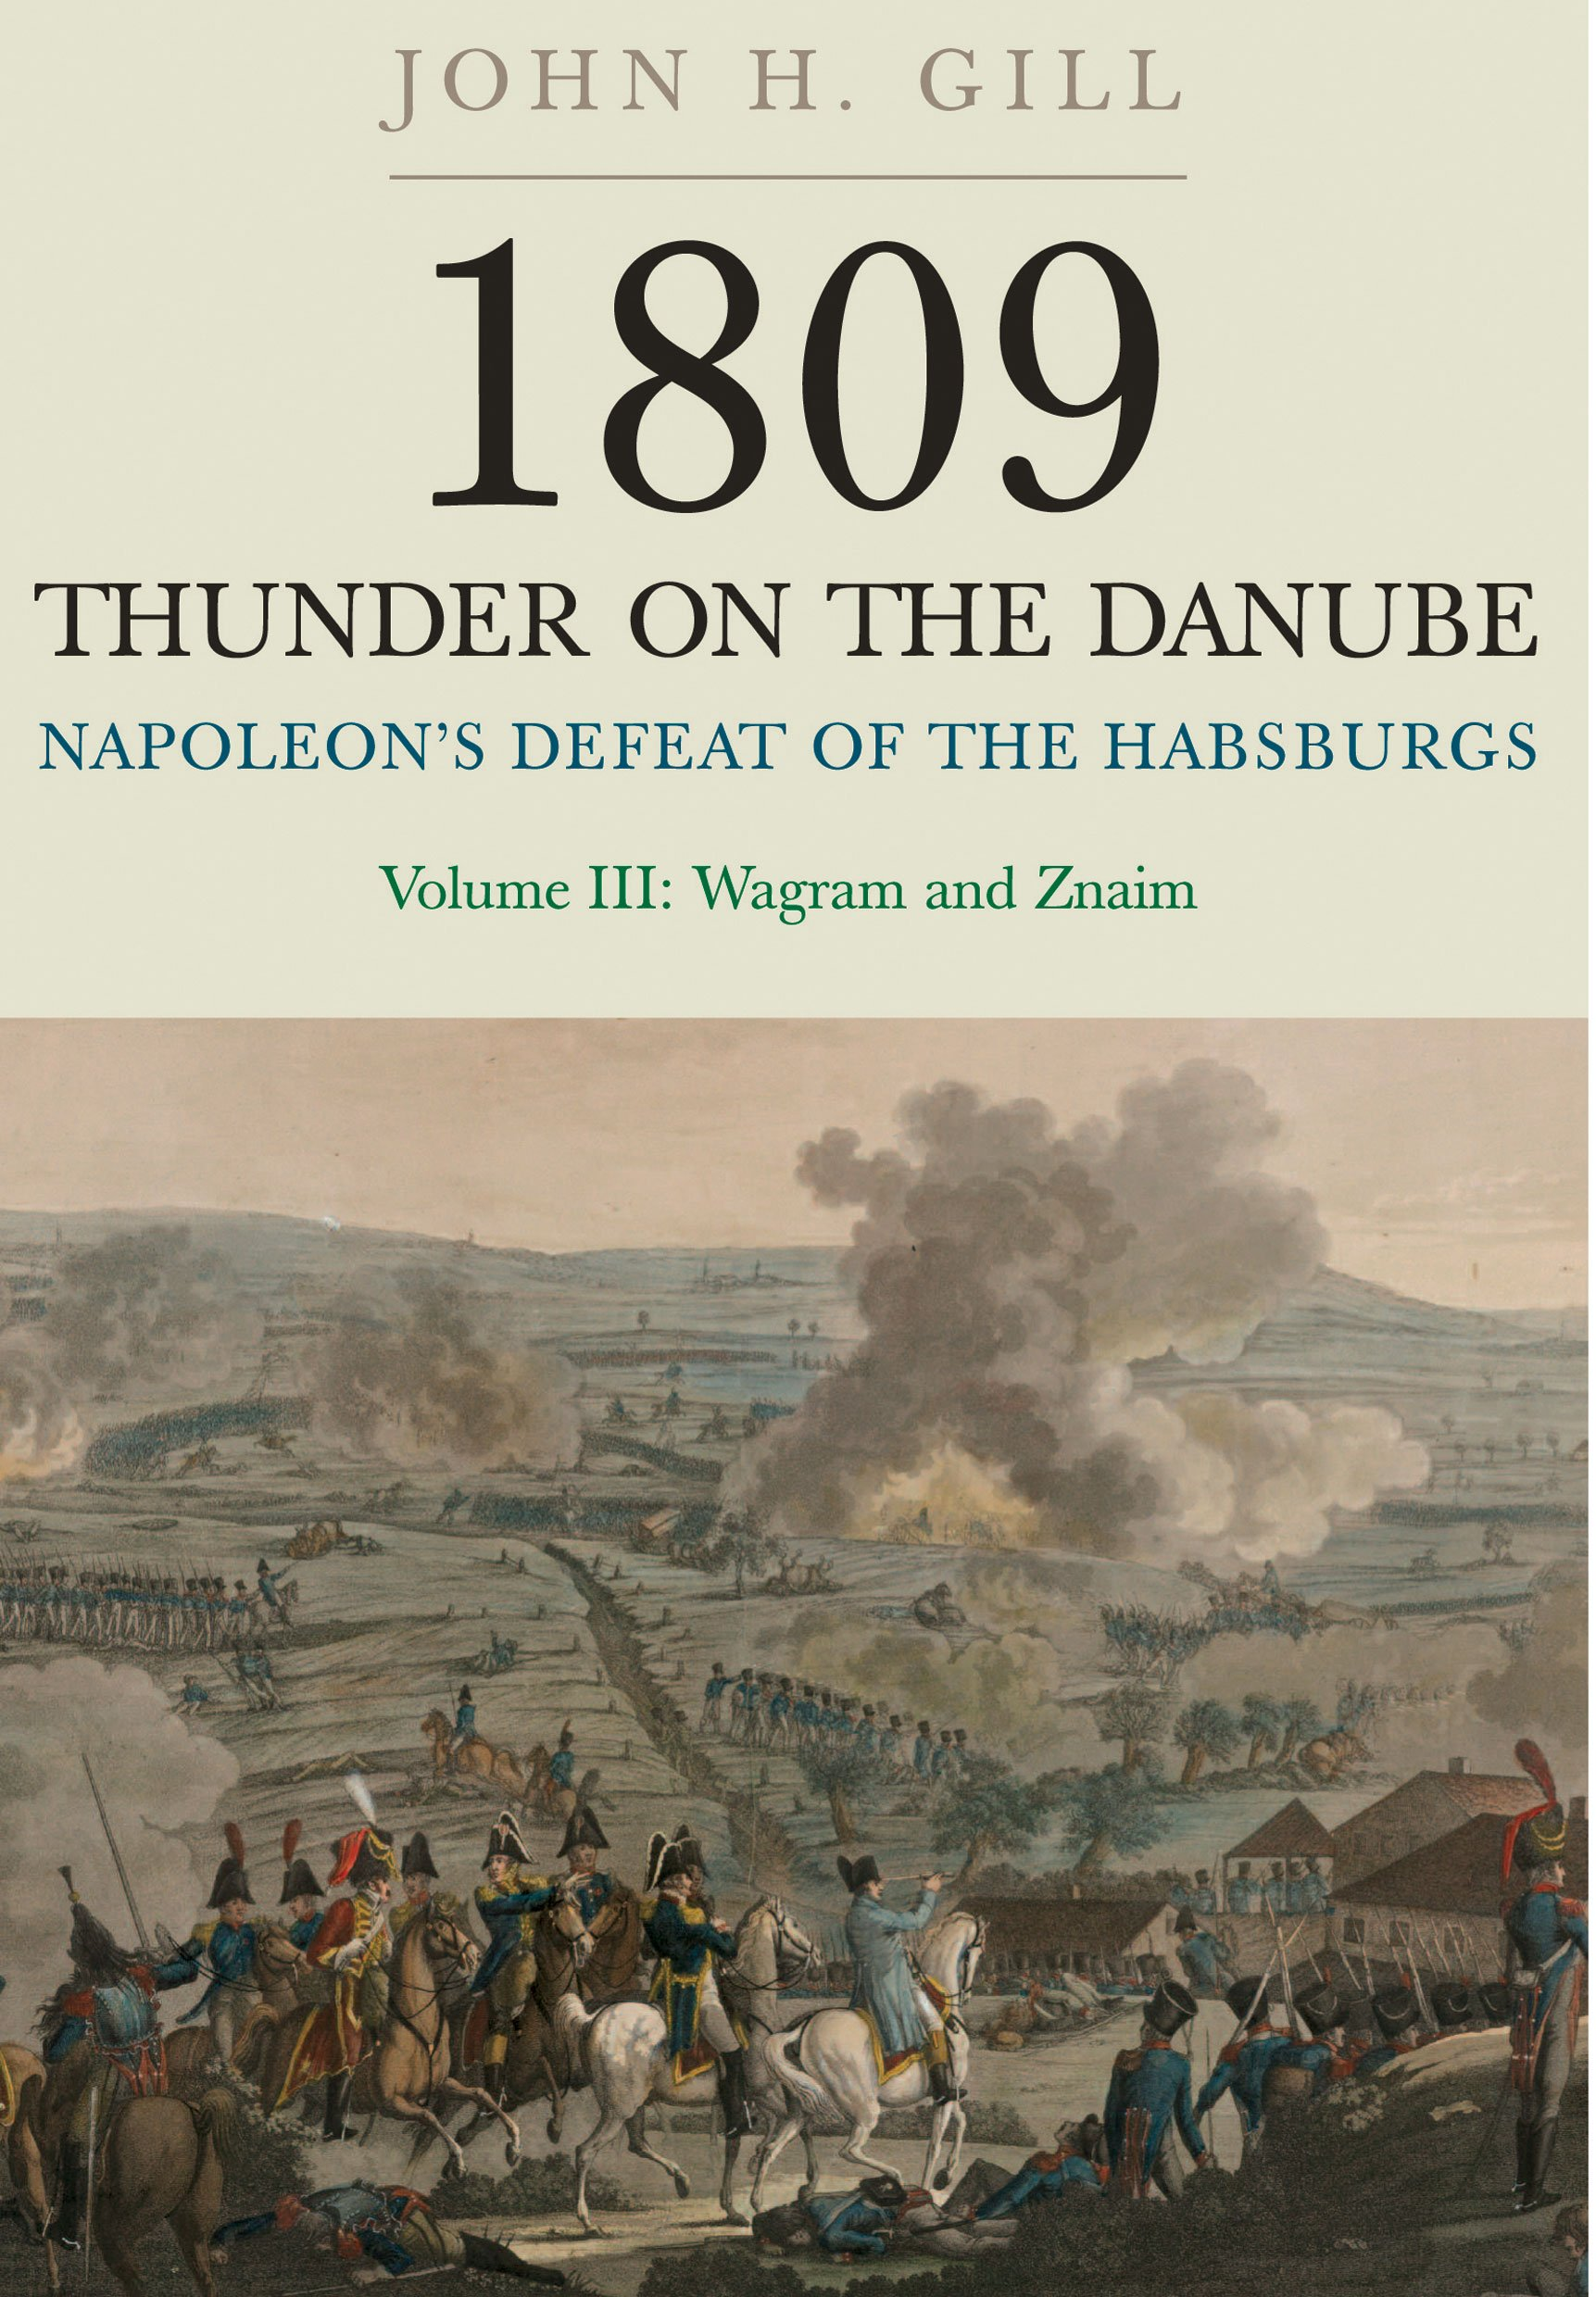 Thunder on the Danube: Napoleon's Defeat of the Habsburgs, Vol. III: Wagram and Znaim